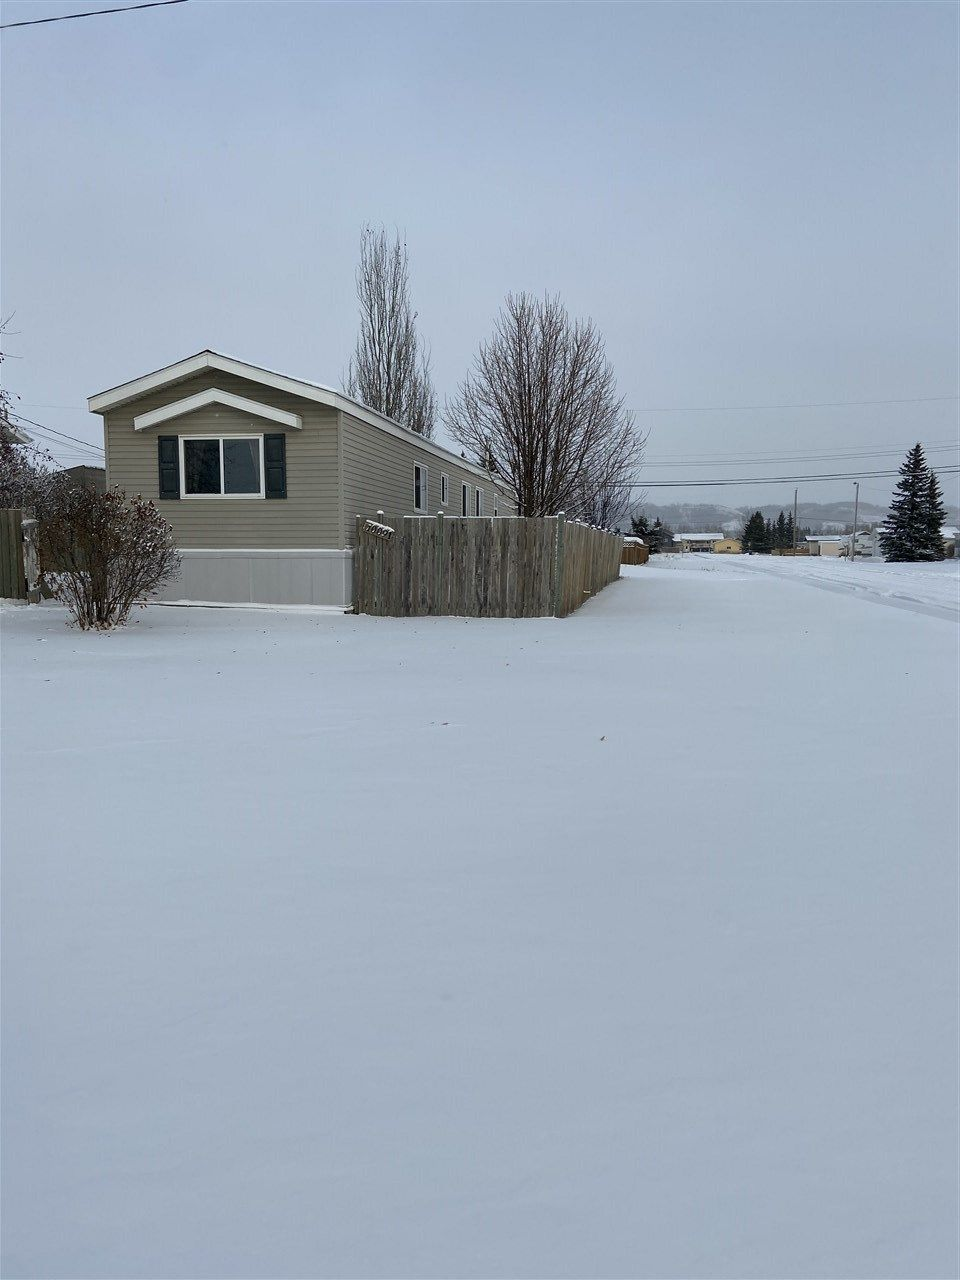 Main Photo: 10091 100A Street: Taylor Manufactured Home for sale (Fort St. John (Zone 60))  : MLS®# R2517124